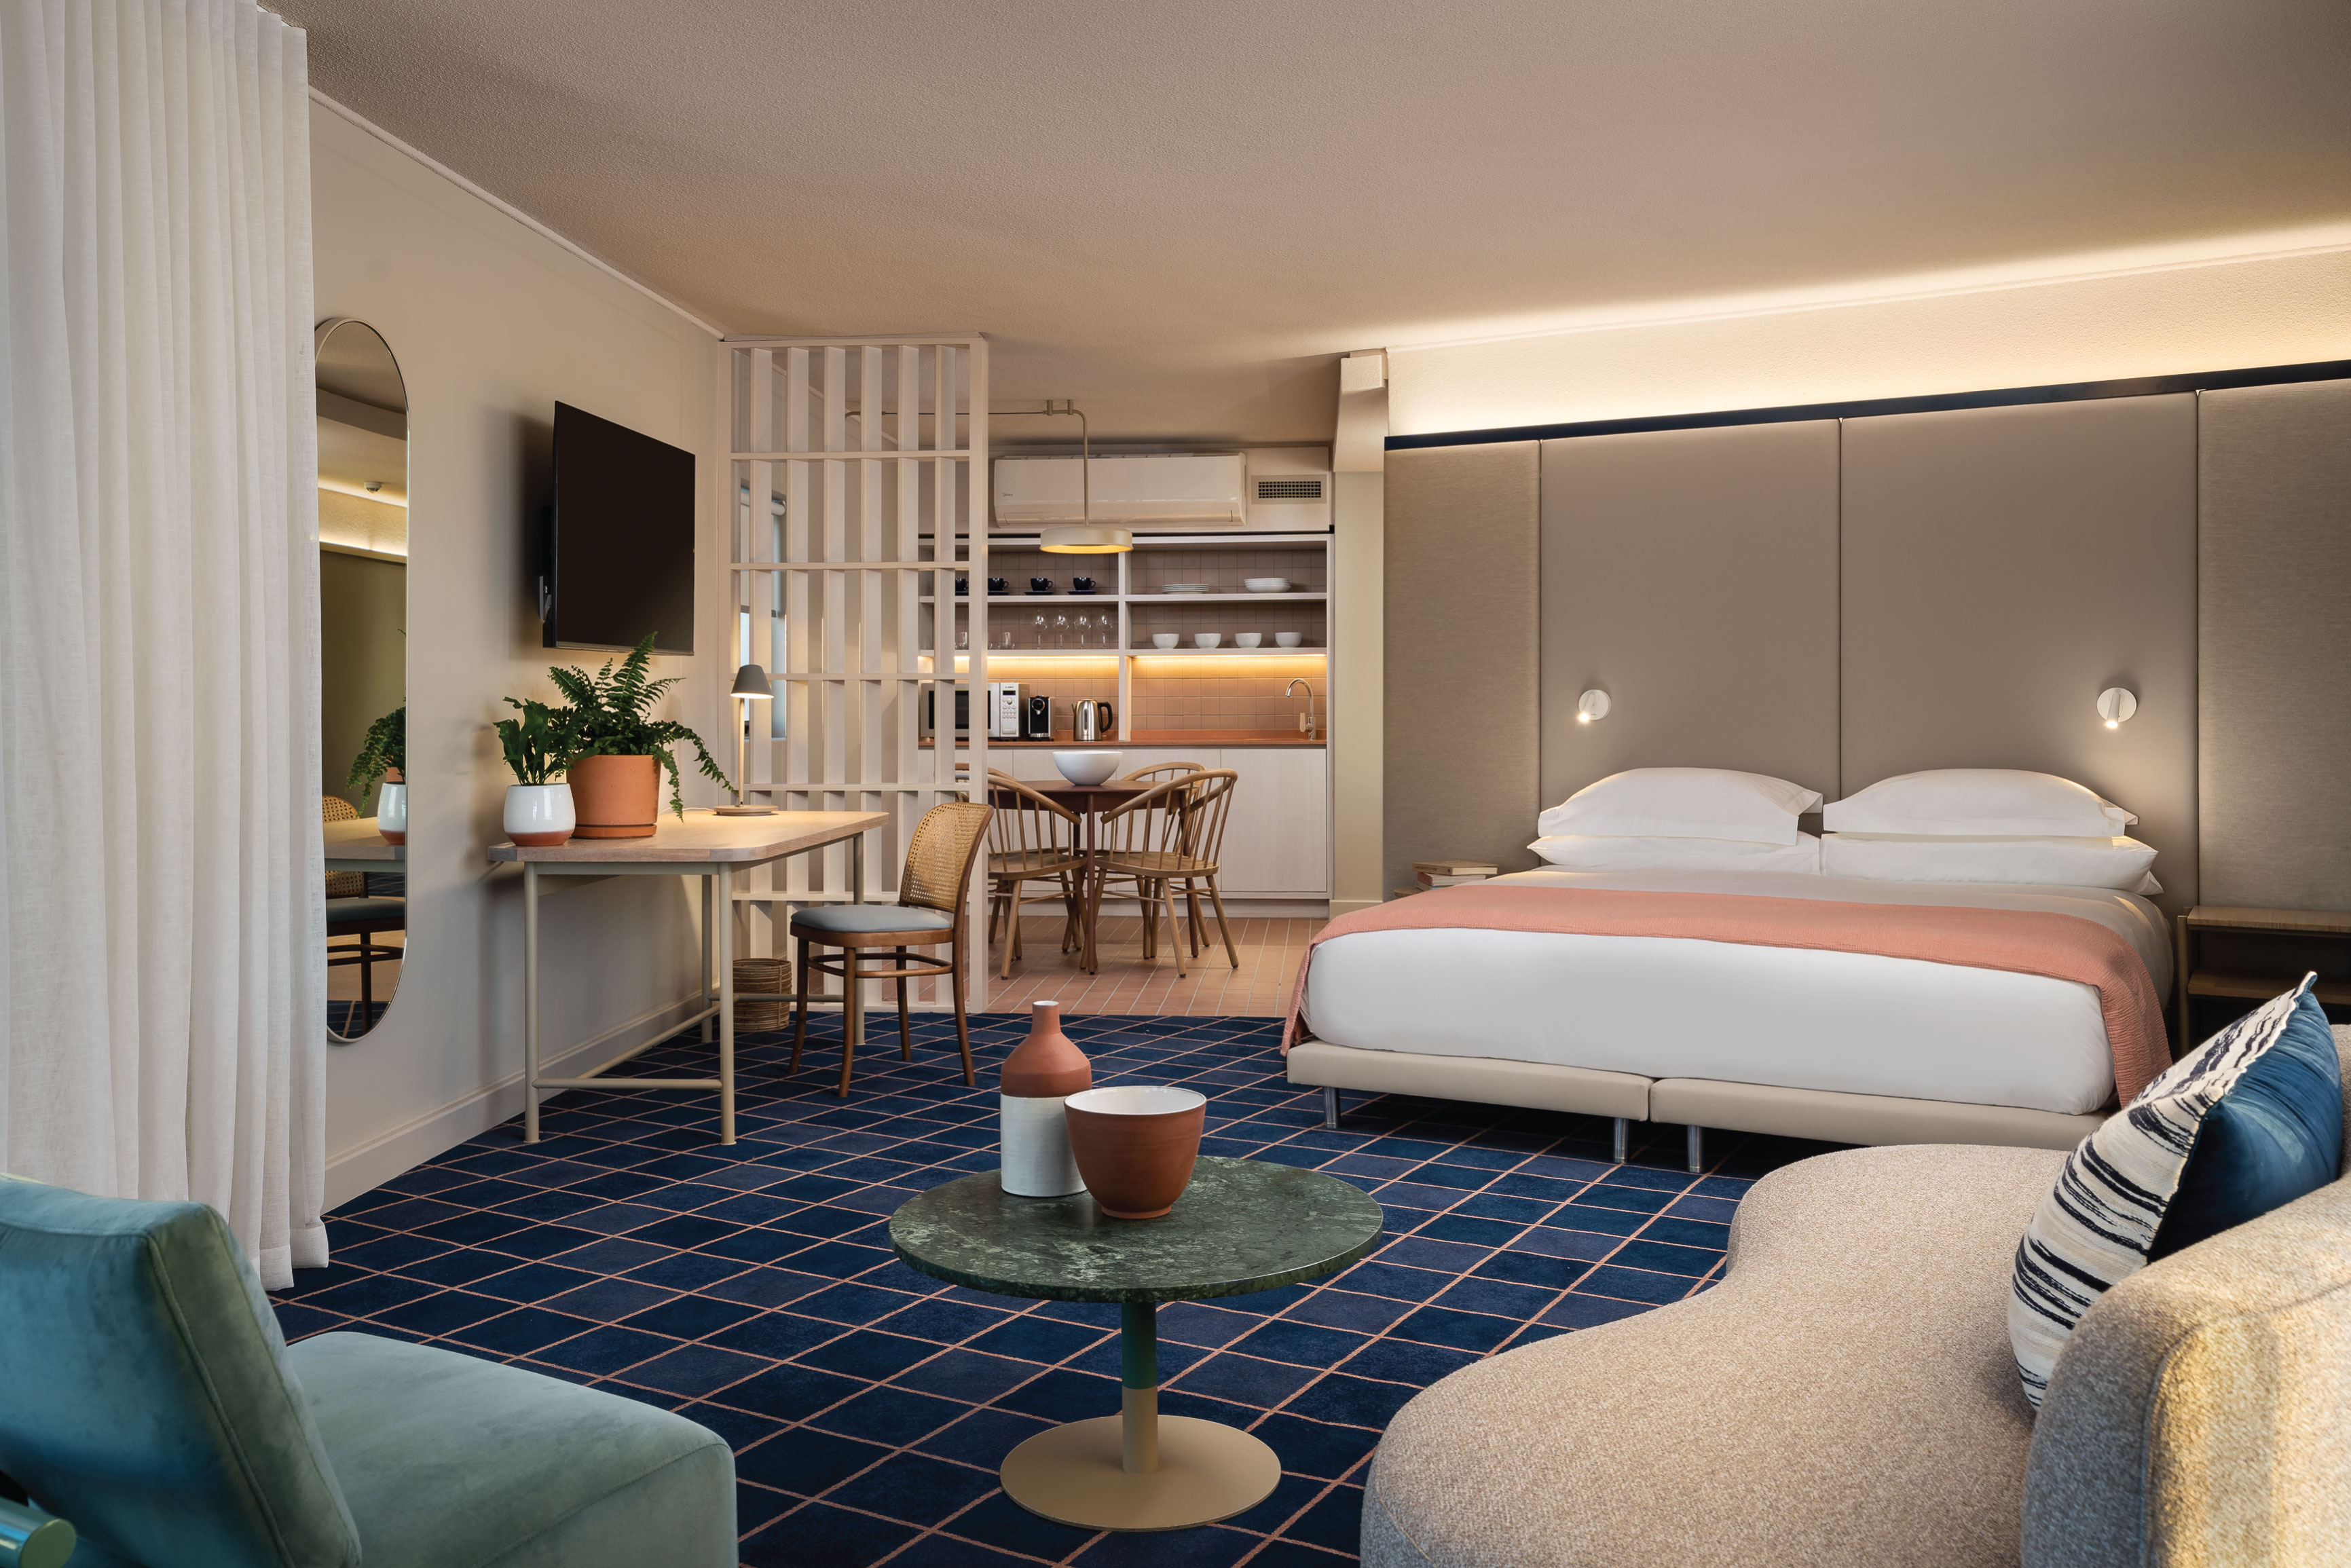 Home Suites Sea Point The Home Ultra suite serviced suites stylish apartments  spacious rooms